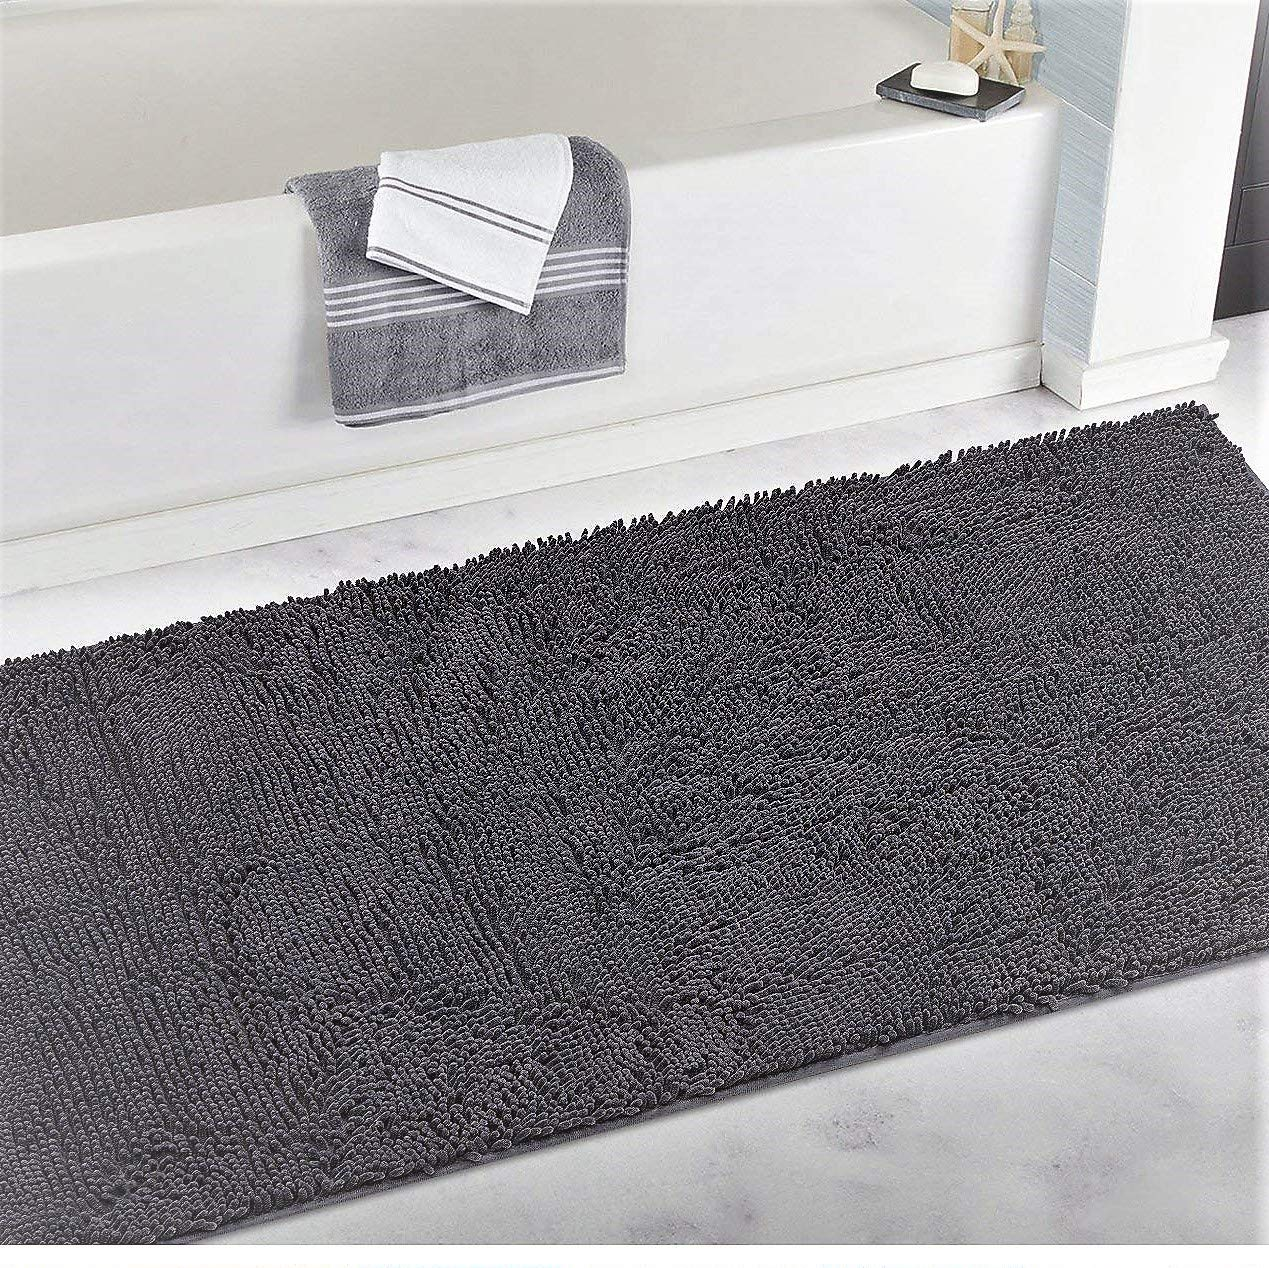 LuxUrux Chenille Bathroom Rug Mat Runner, Extra Soft Absorbent Large Shaggy Rugs, Perfect Plush Carpet Mats Tub, Shower Bath Room, Machine Wash/Dry (Dark Blue, 27'' x 47'') 27'' x 47'')